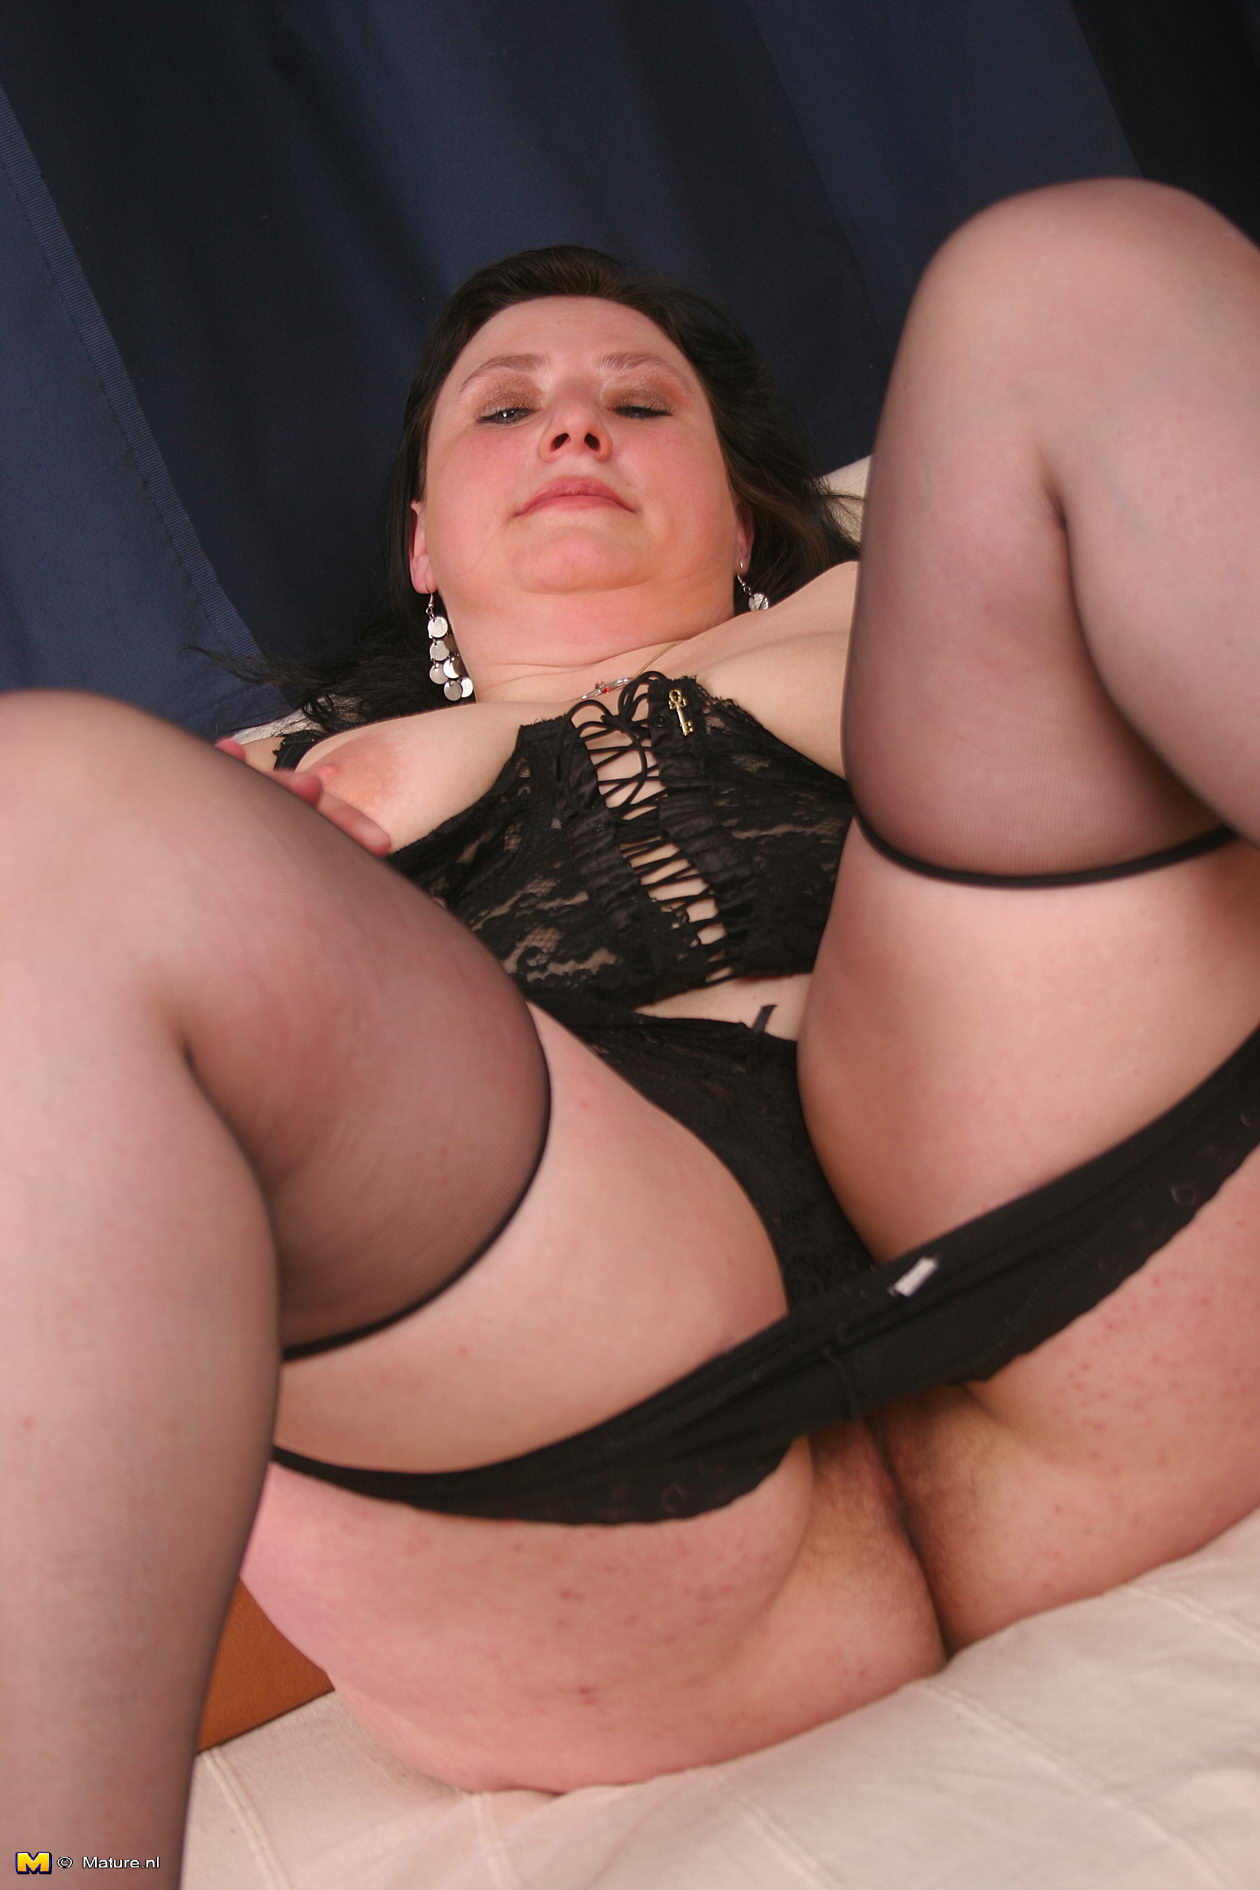 Over 60 mature model pearl shows us her granny body and pier - 2 part 10